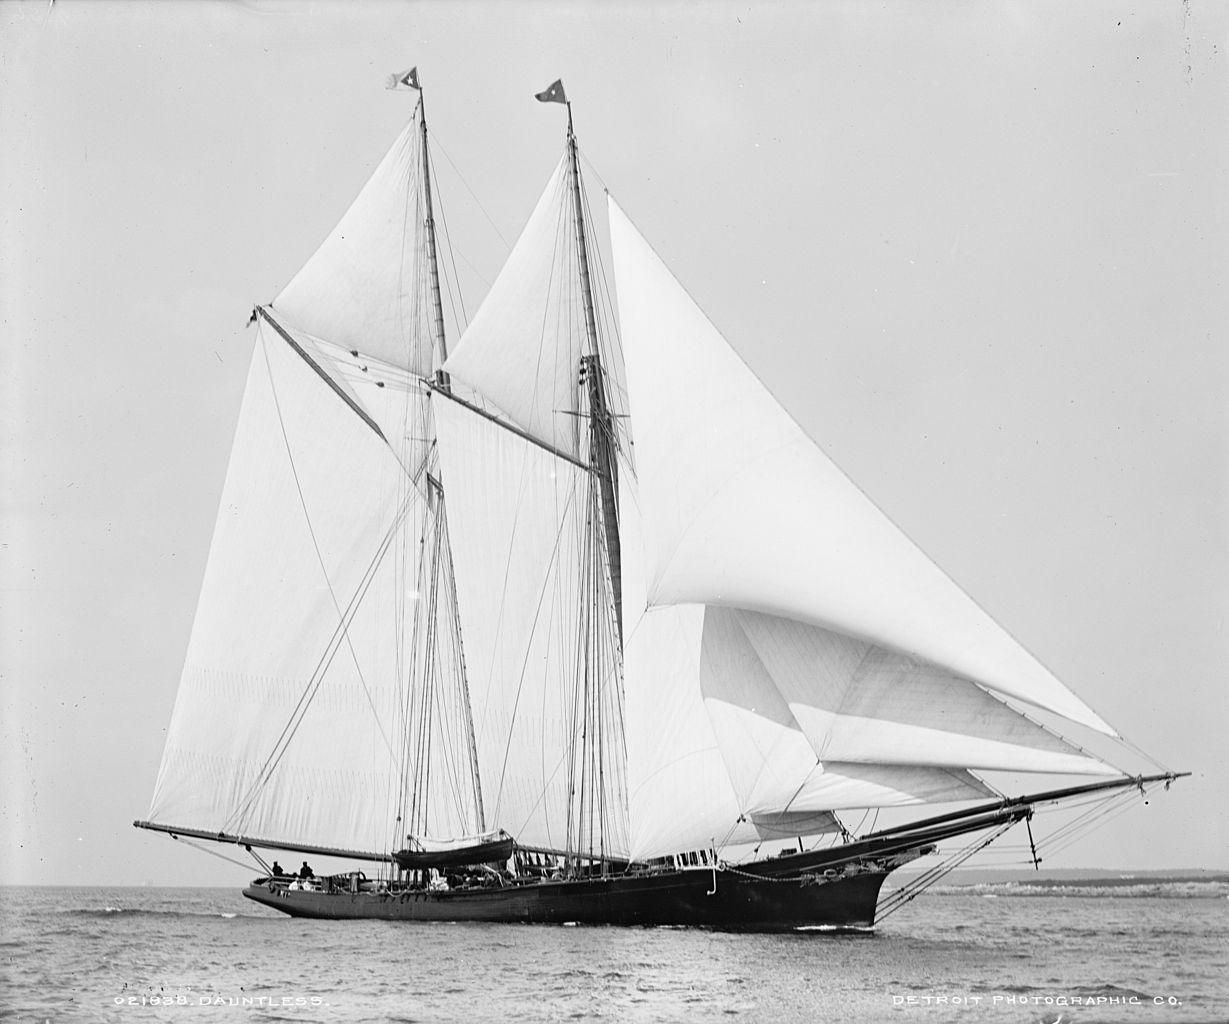 Caldwell's schooner, the Dauntless.